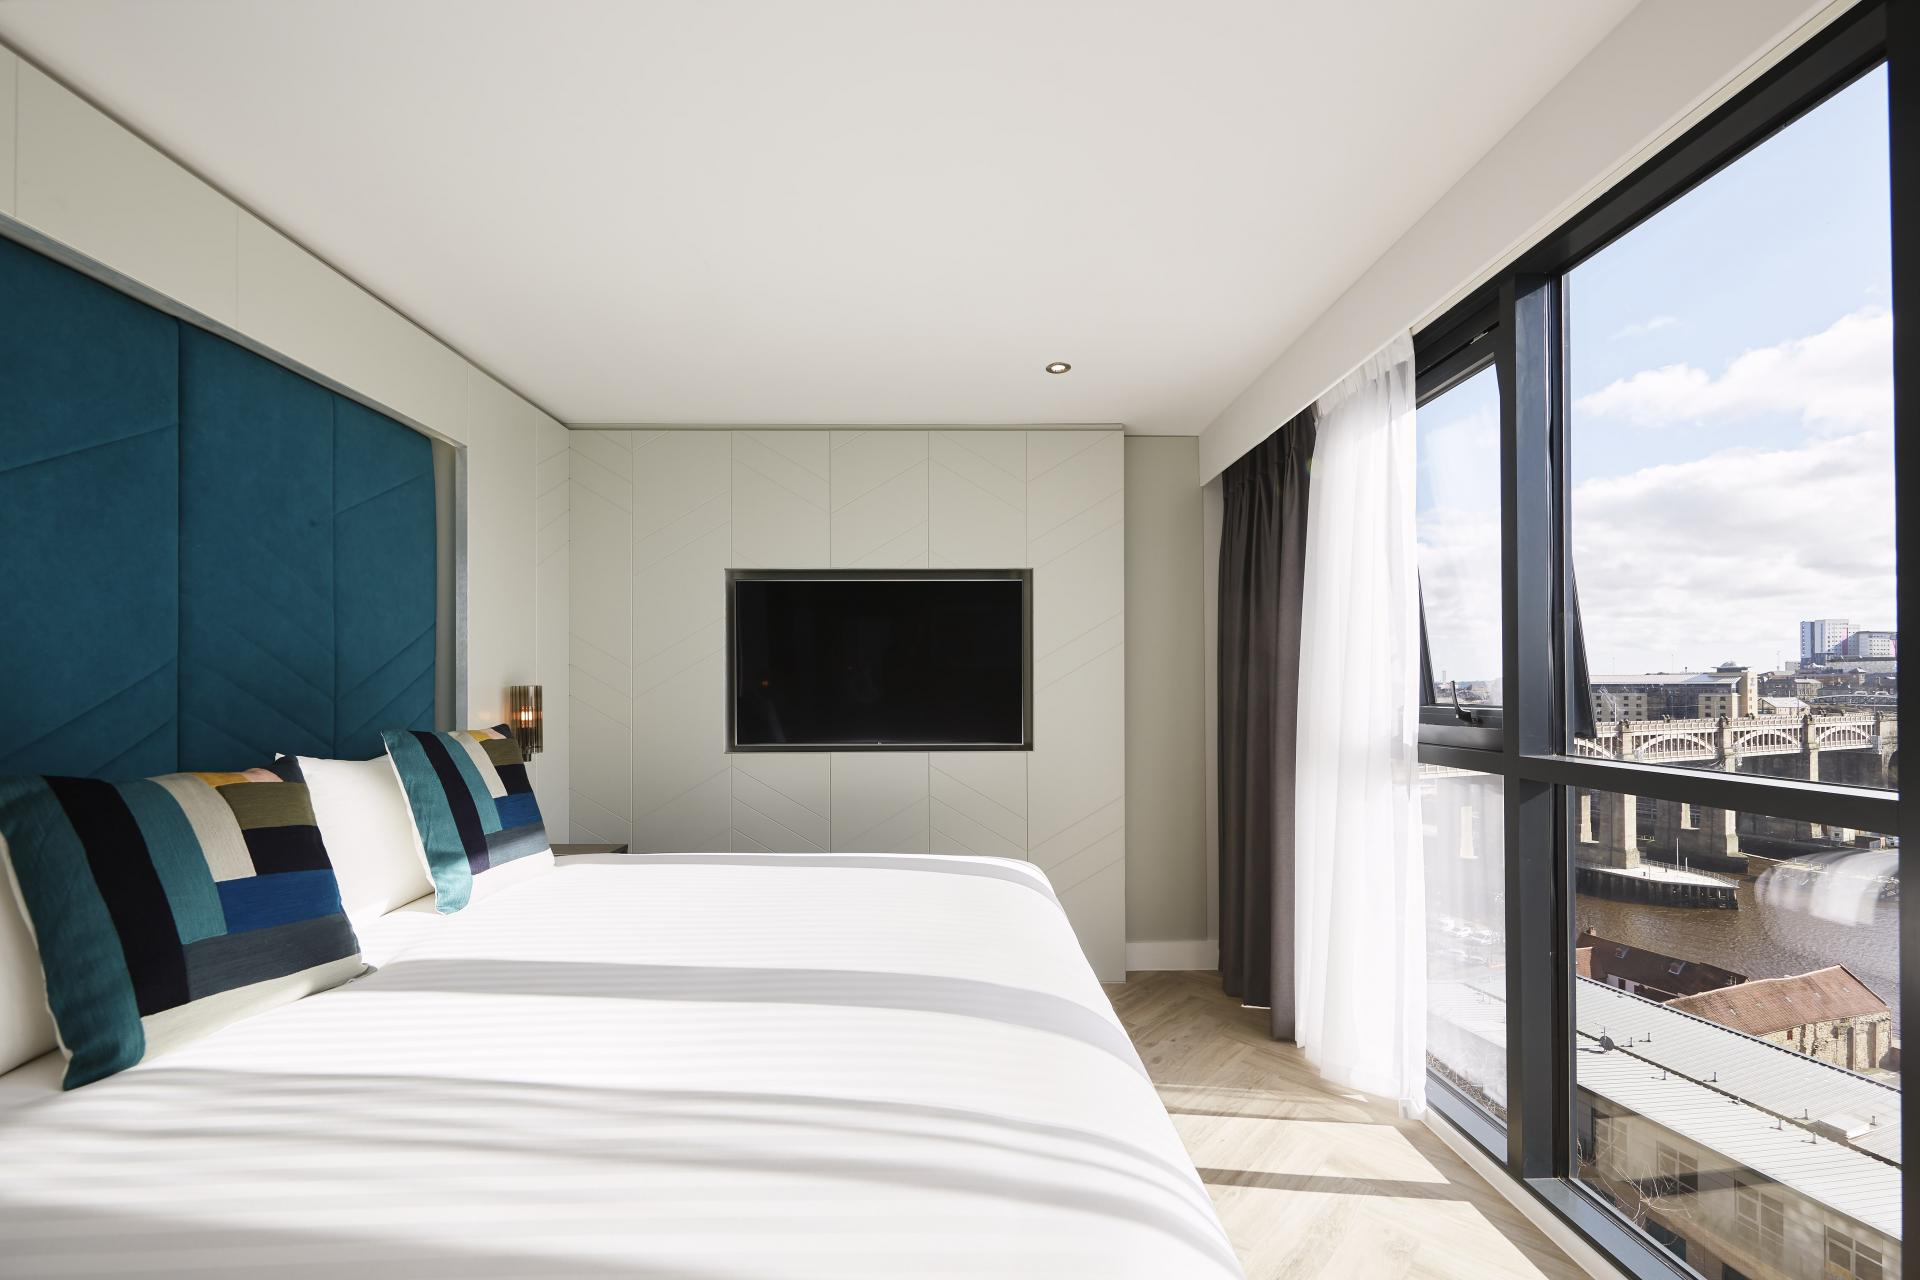 White sheets on a large bed with fantastic views of Newcastle